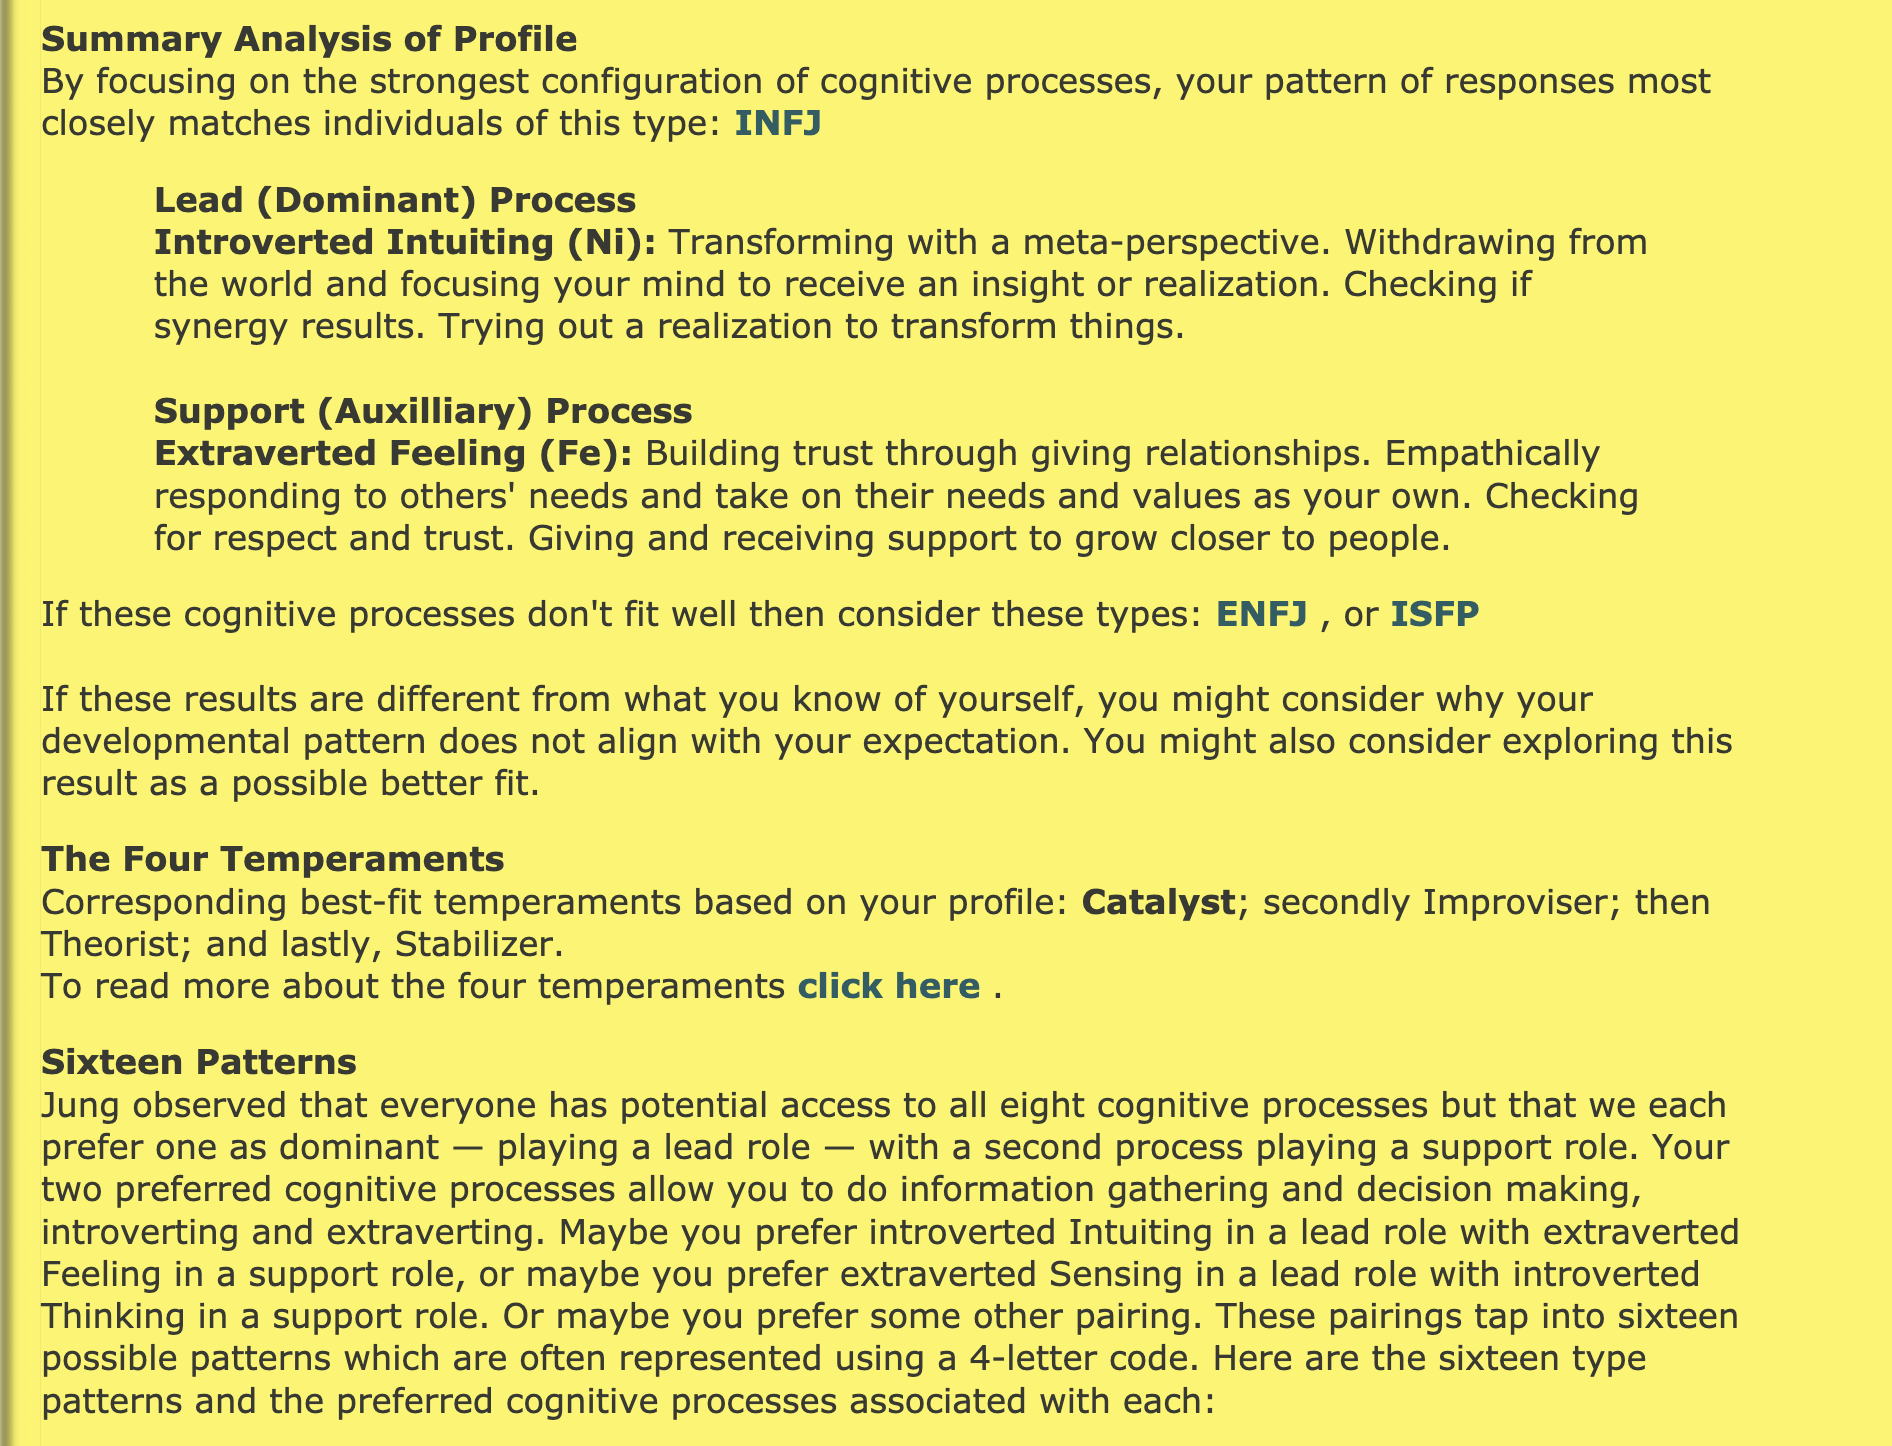 analysis of my profile saying im an infj